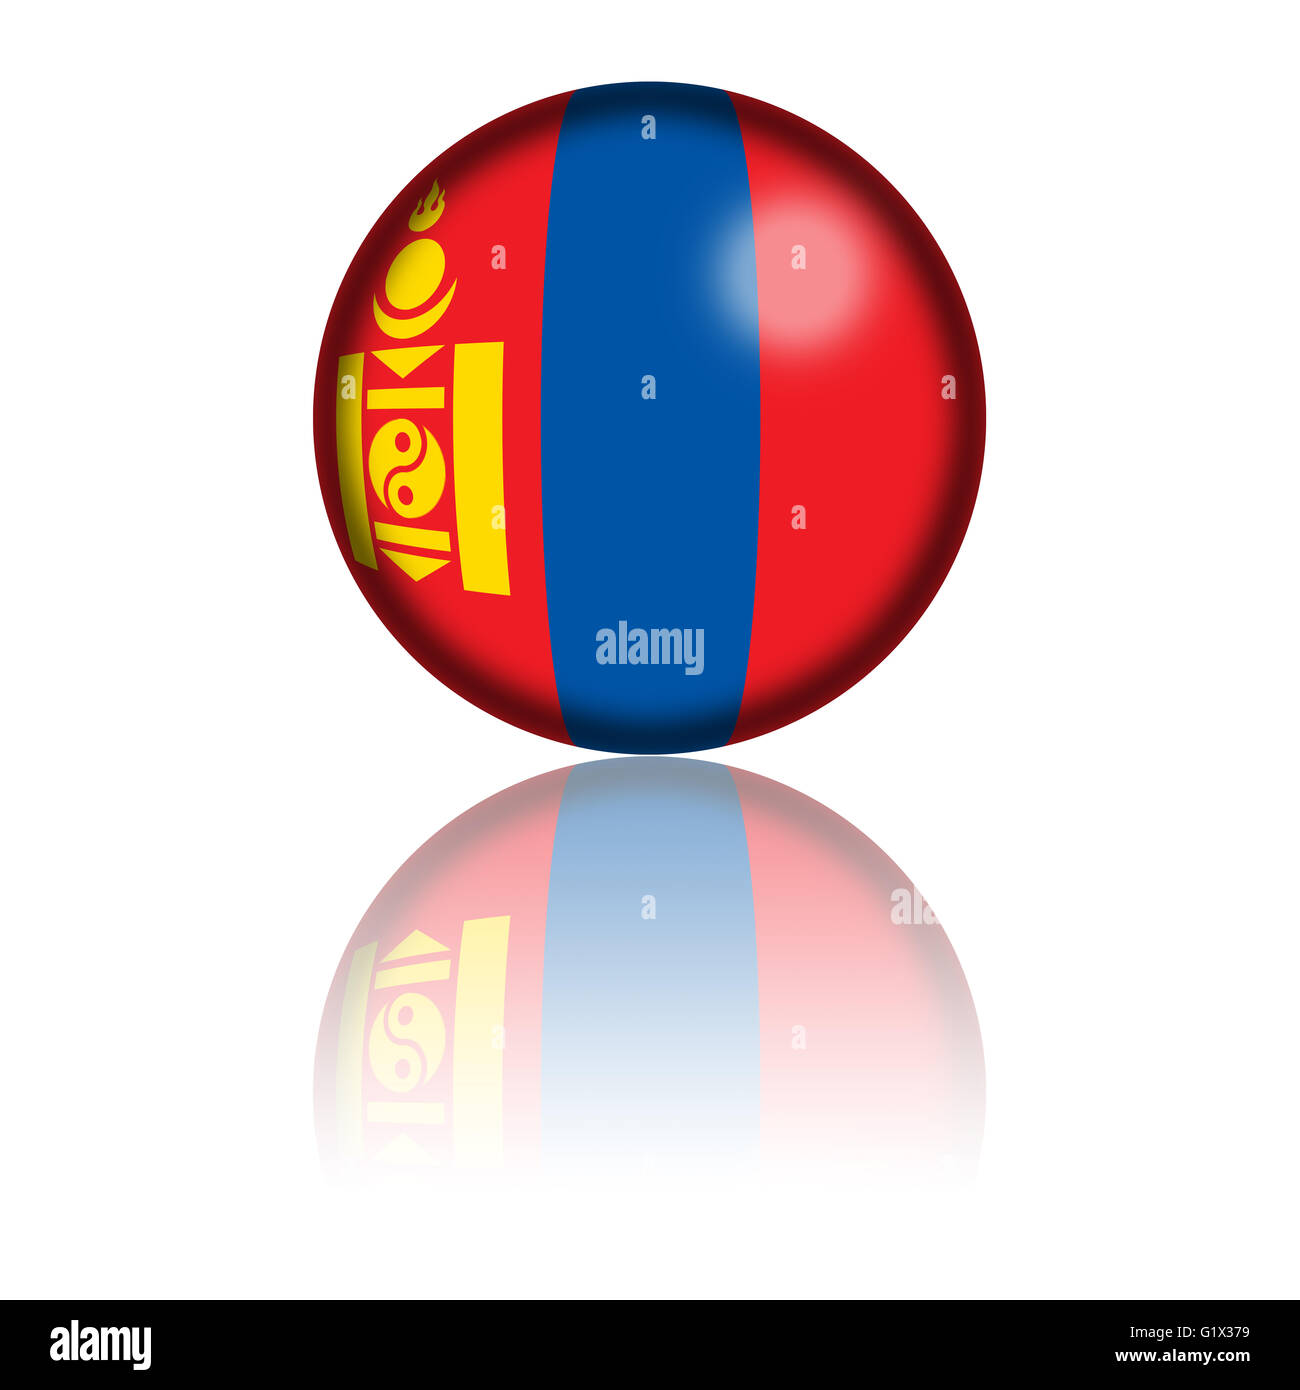 Sphere of Mongolia flag with reflection at bottom. - Stock Image